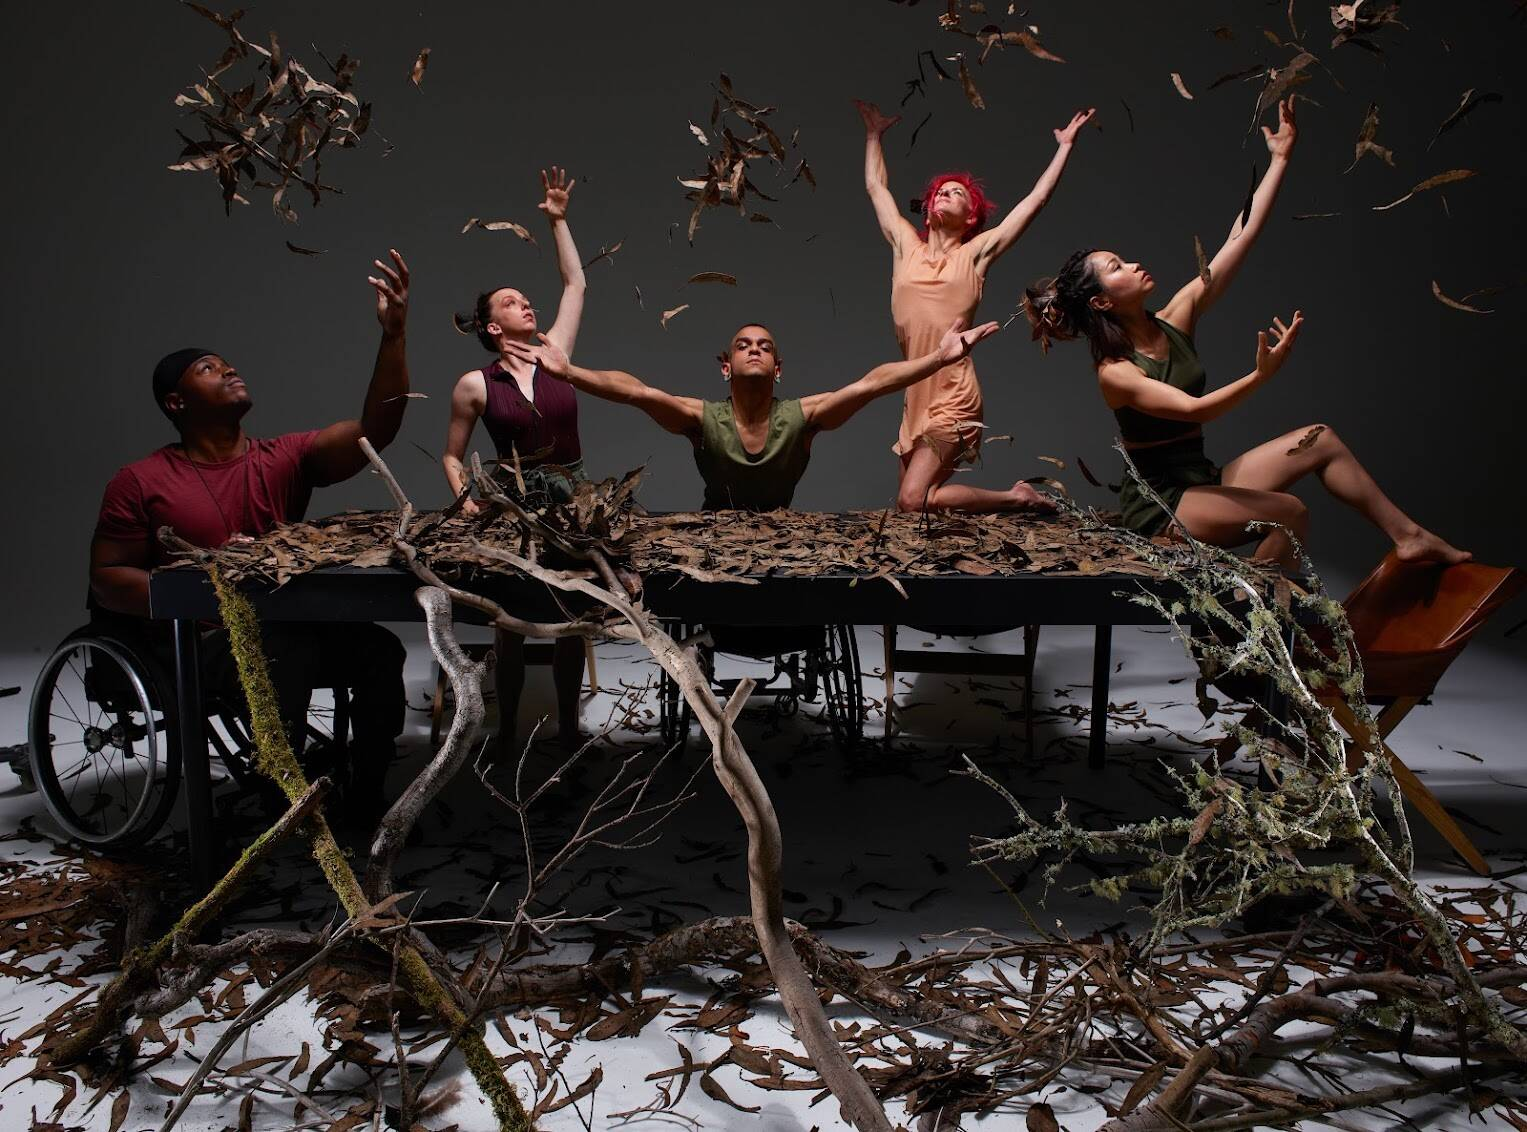 """This weekend at Z Space, AXIS Dance Company premieres """"re:surge,"""" three new works exploring place and belonging. Dancers, left to right, DeMarco Sleeper, Louisa Mann, JanpiStar, Sonsherée Giles, Yuko Monden Juma (Photograph David DeSilva)"""